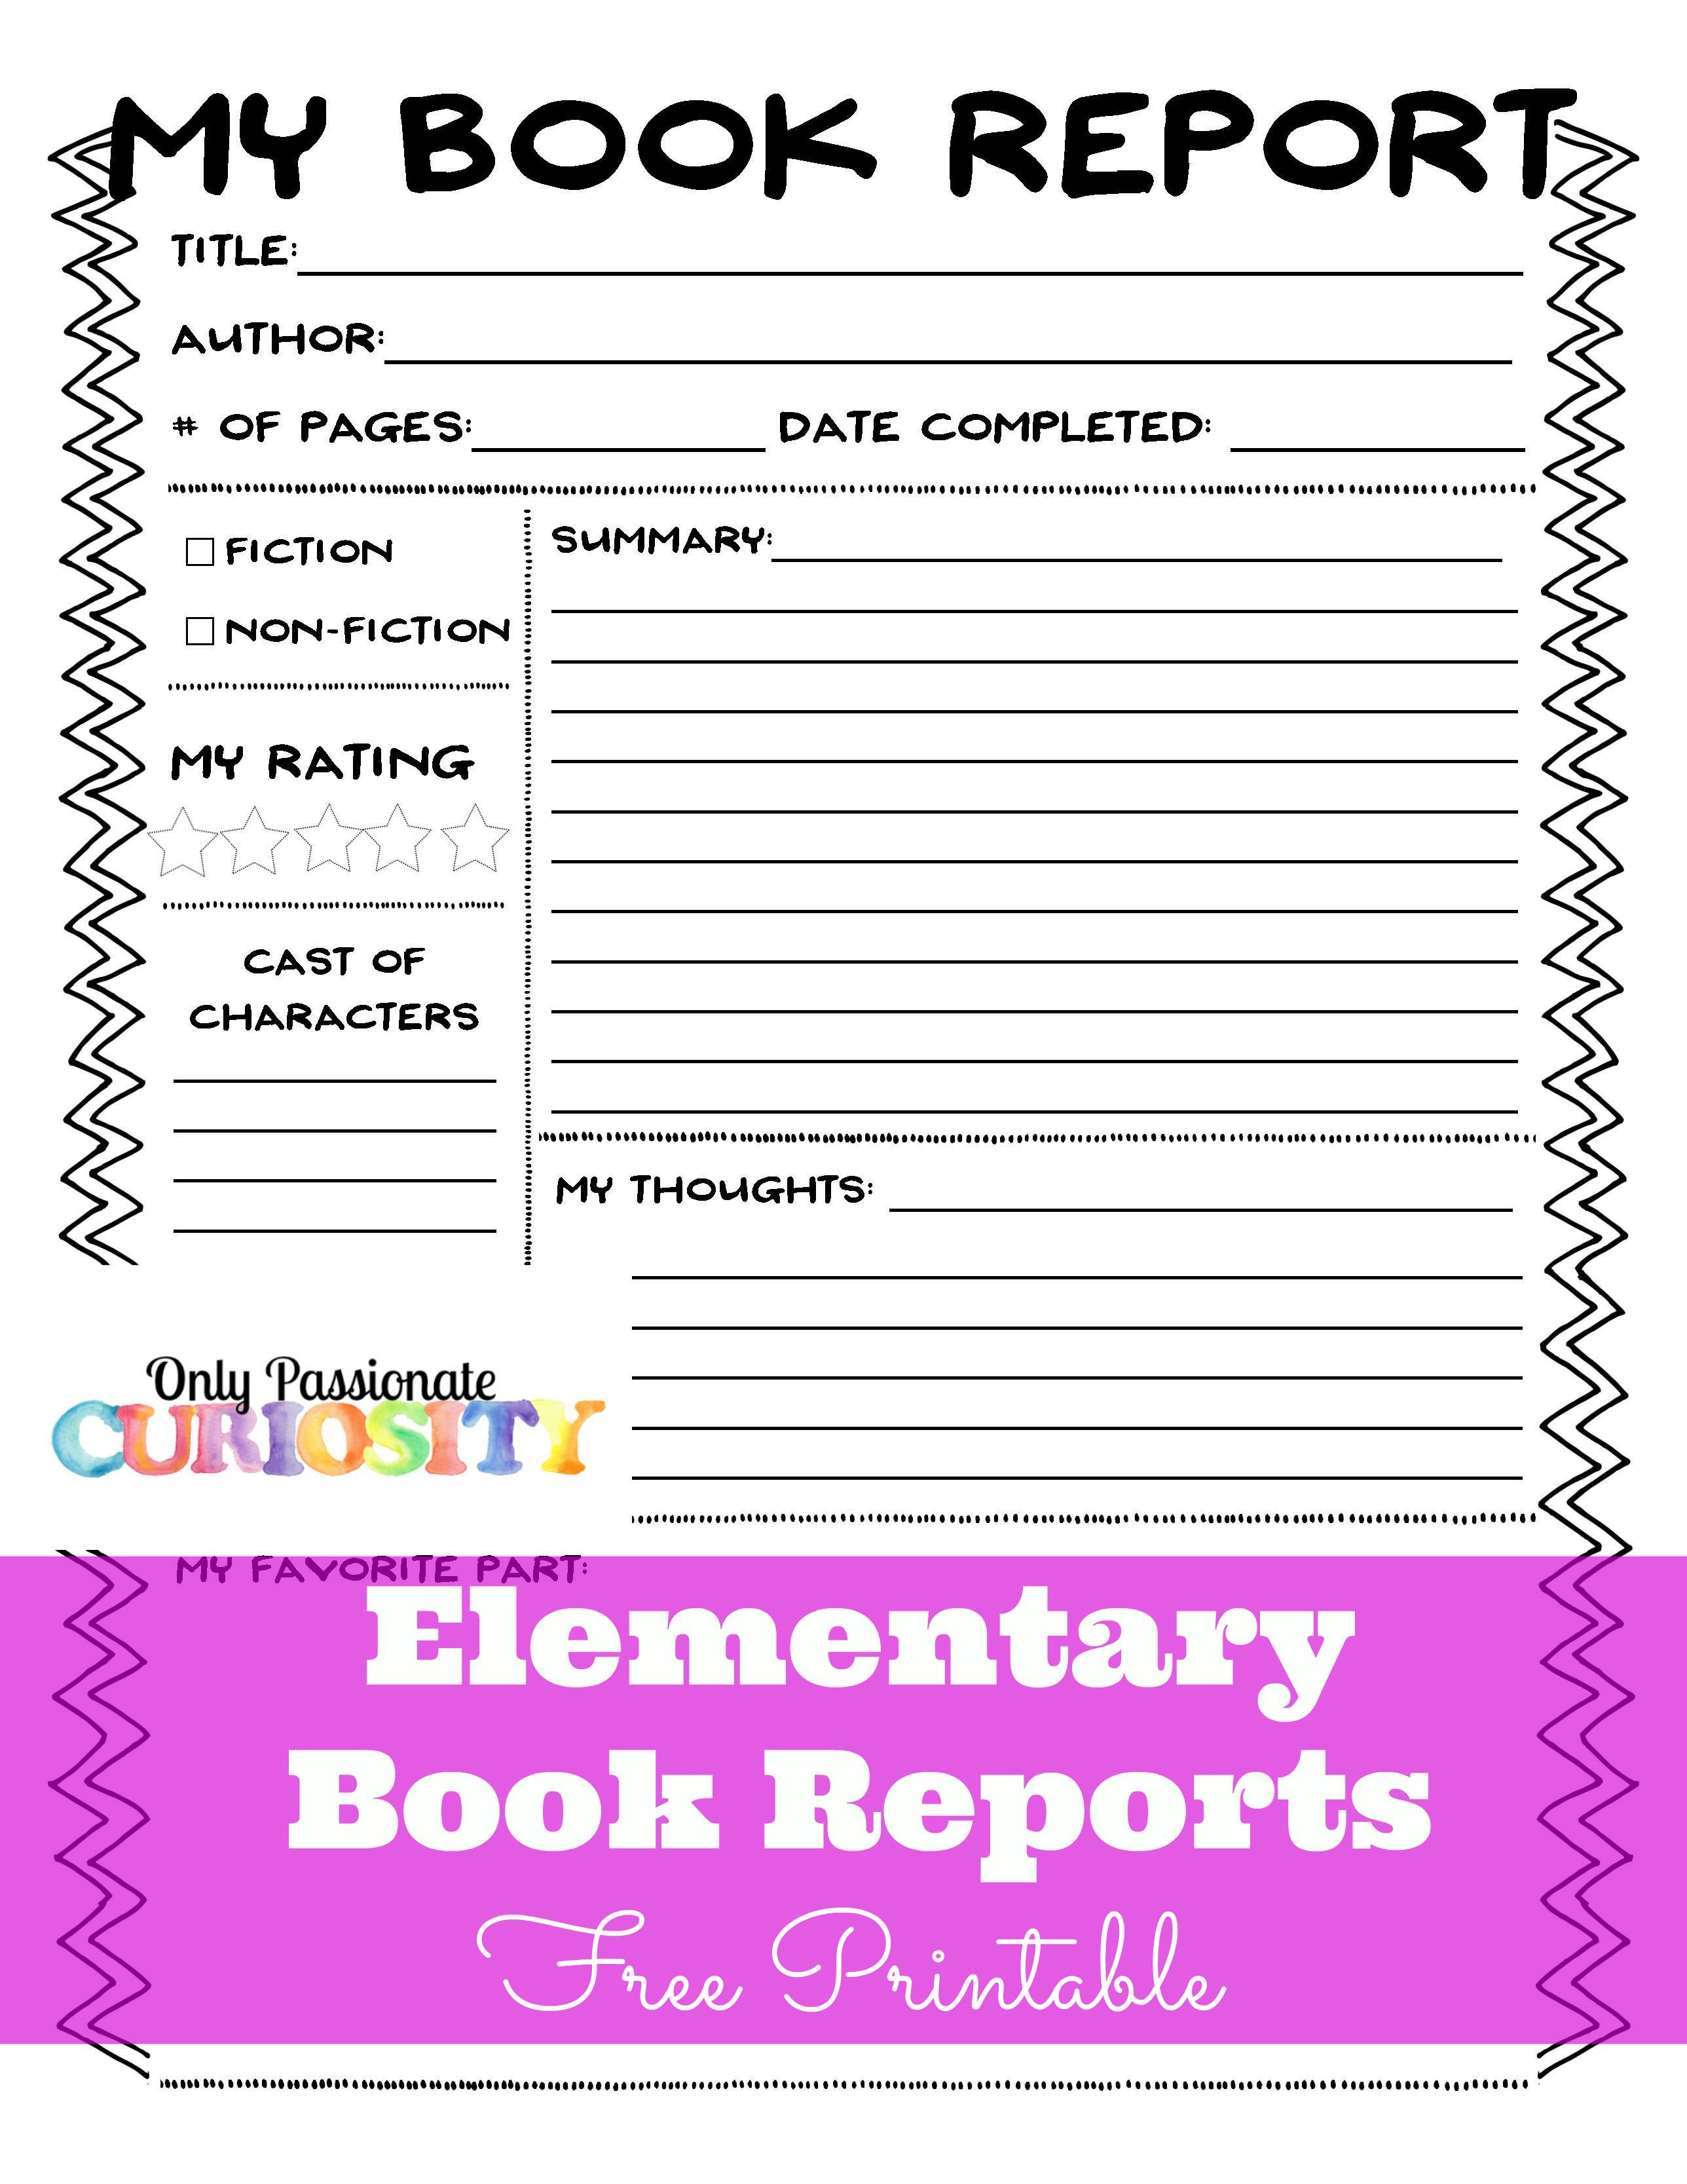 Elementary Book Reports Made Easy With Images